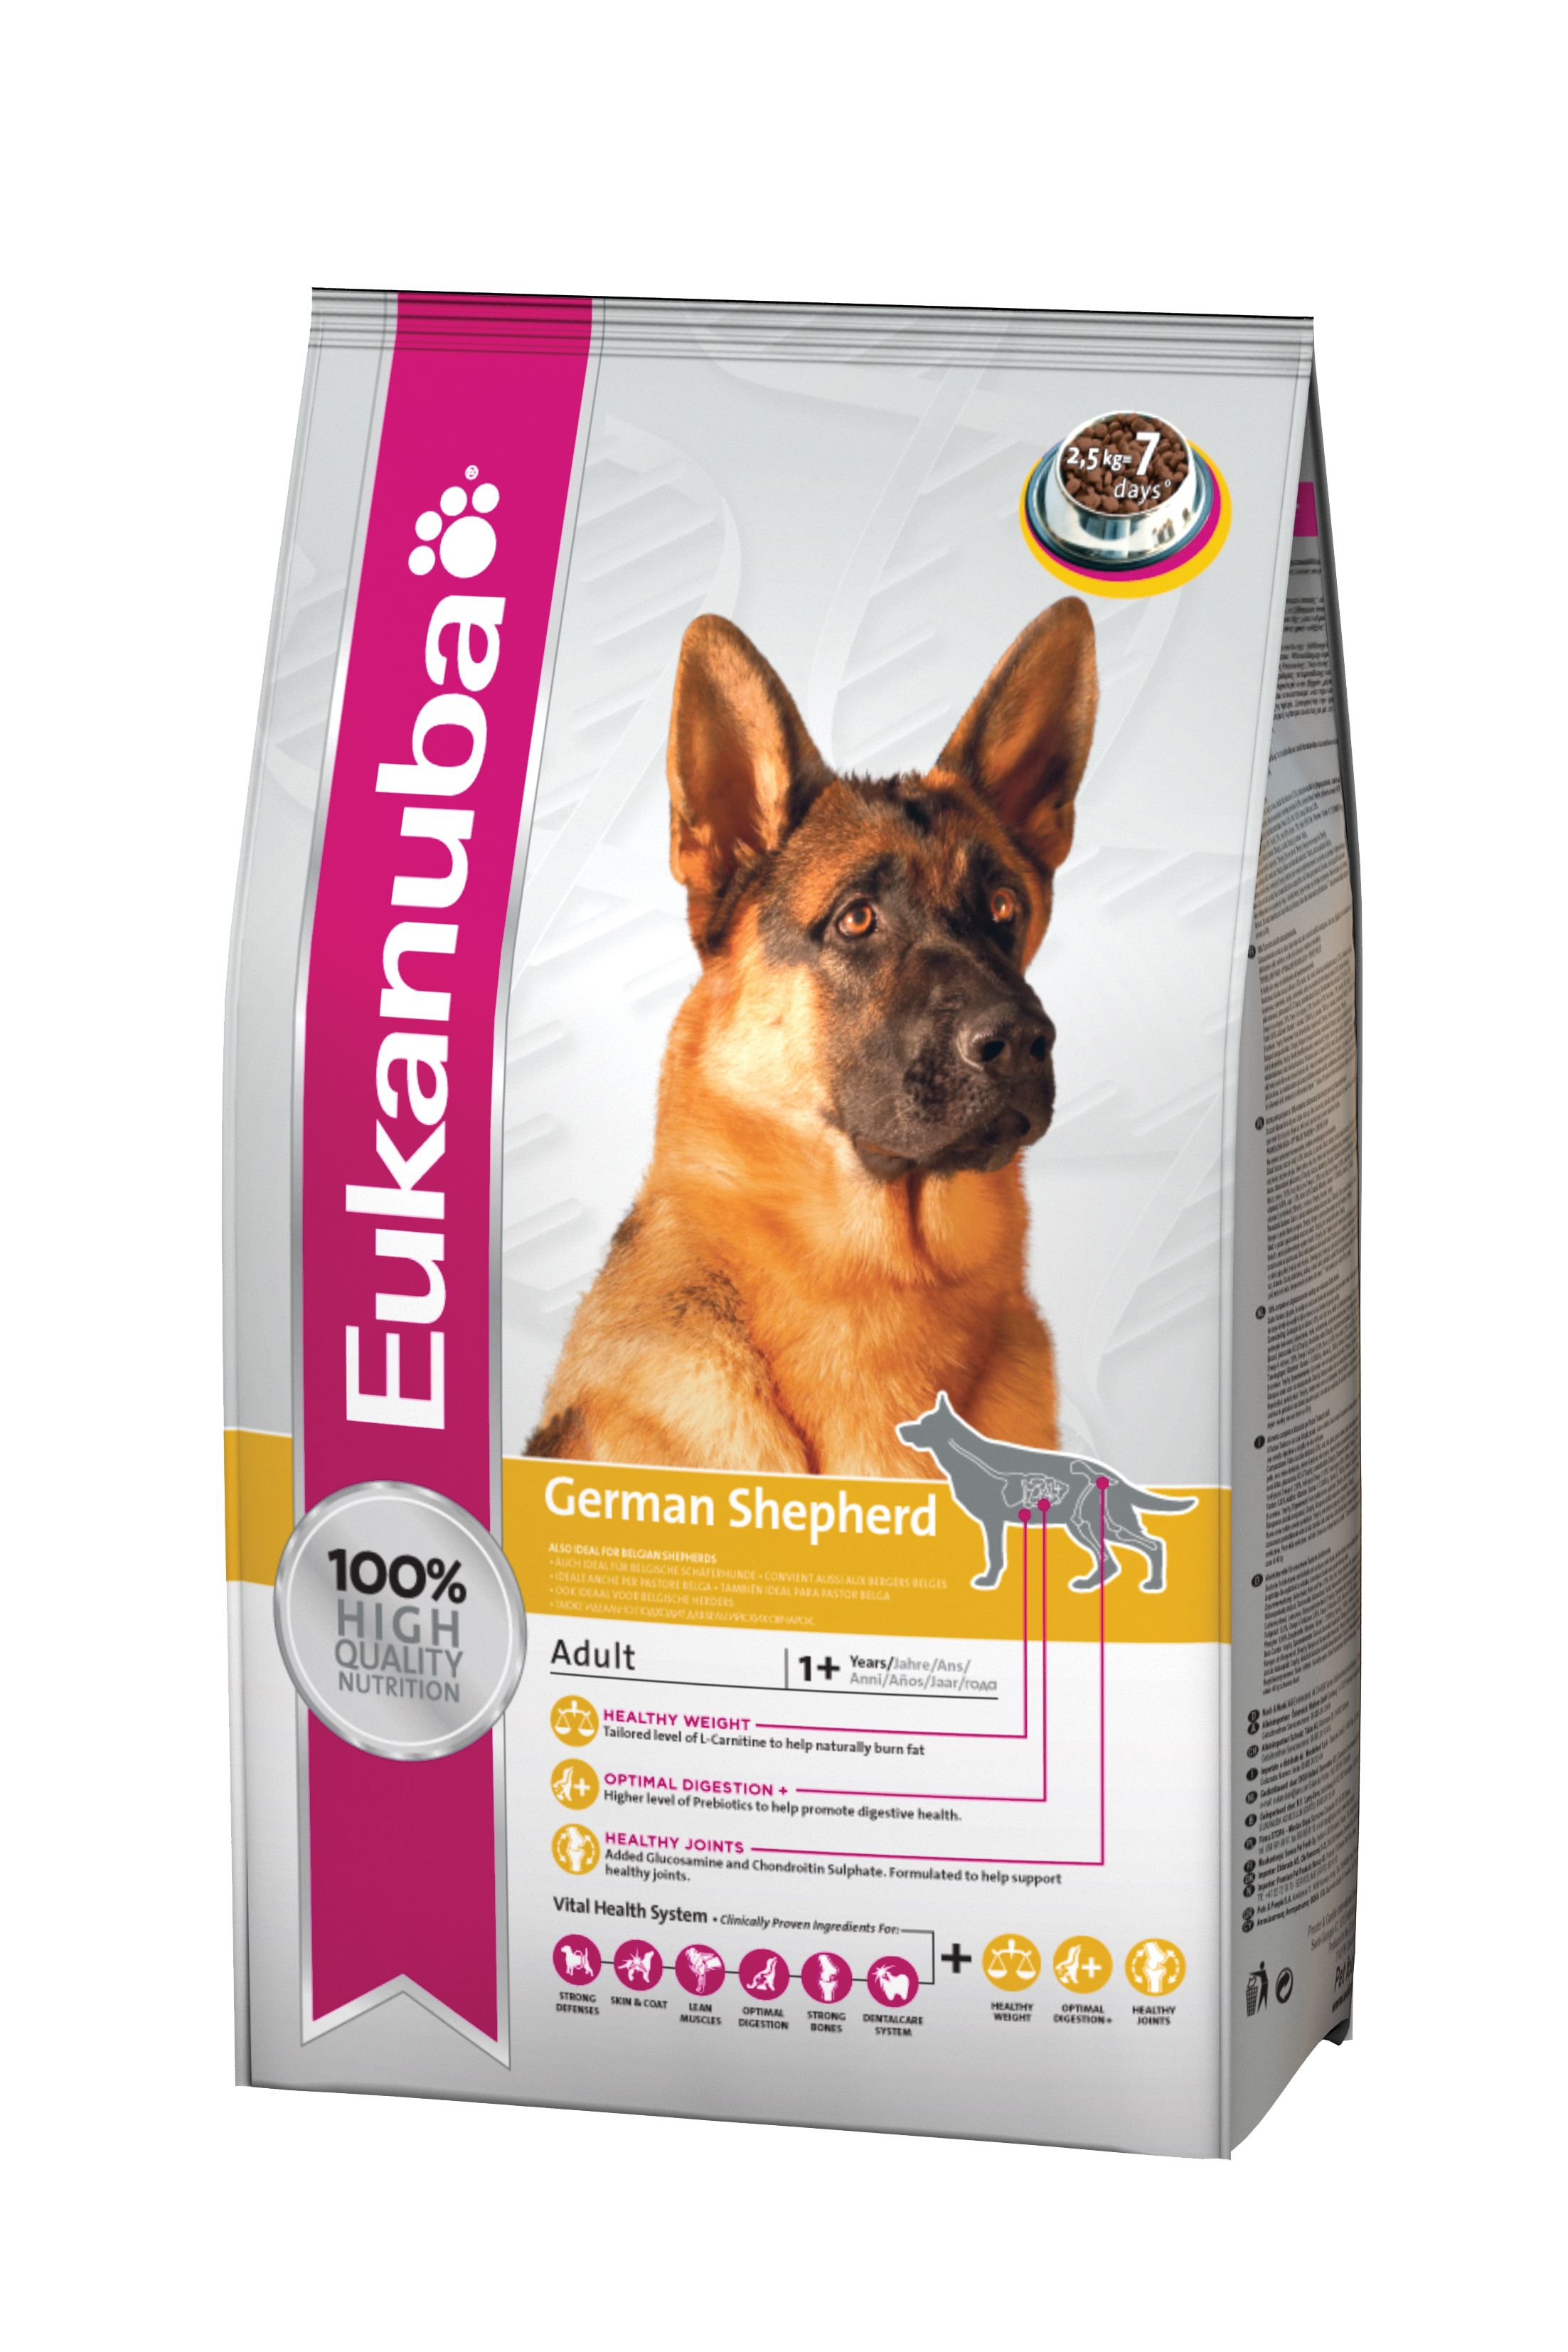 Eukanuba Dog Food Adult German Shepherd 2 5 Kg Dog Food Recipes